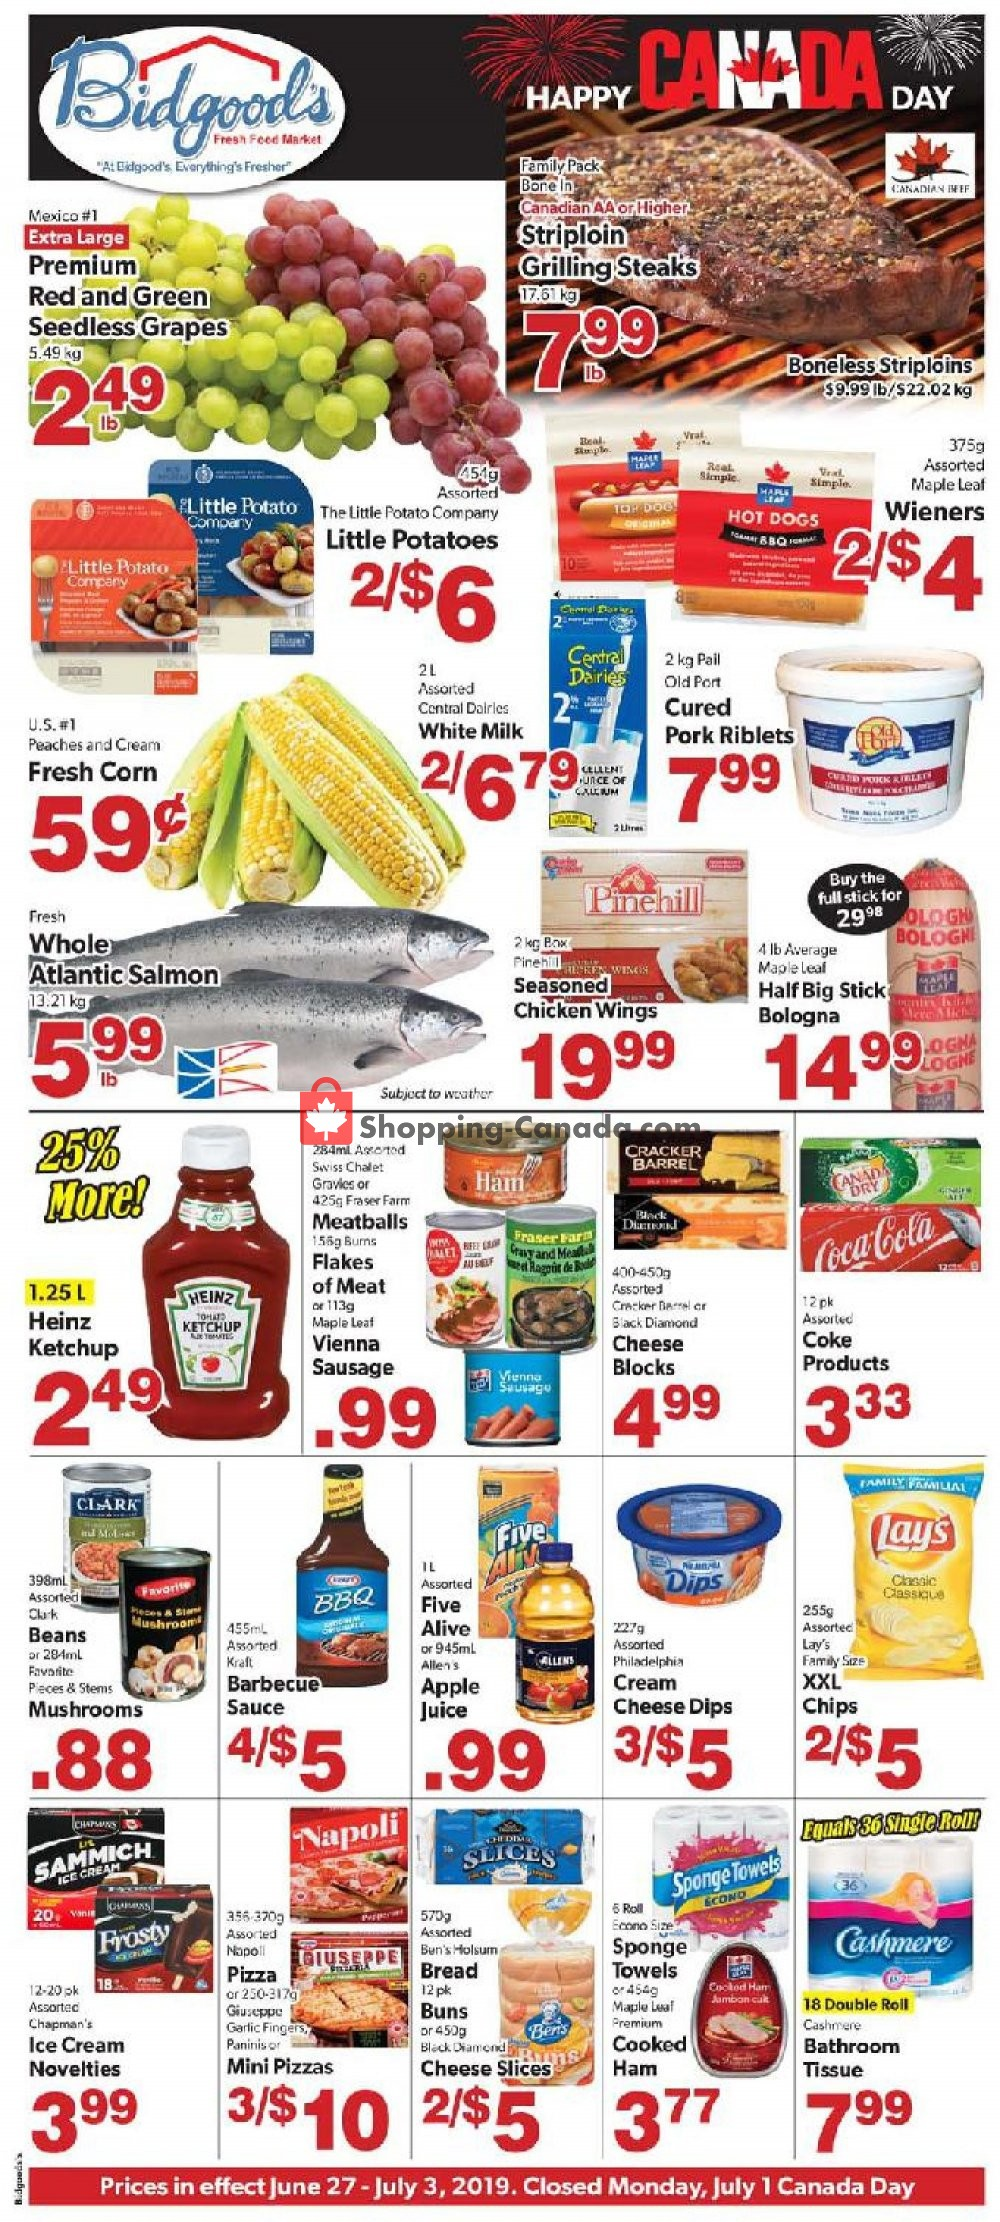 Flyer Bidgood's Supermarket Canada - from Thursday June 27, 2019 to Wednesday July 3, 2019